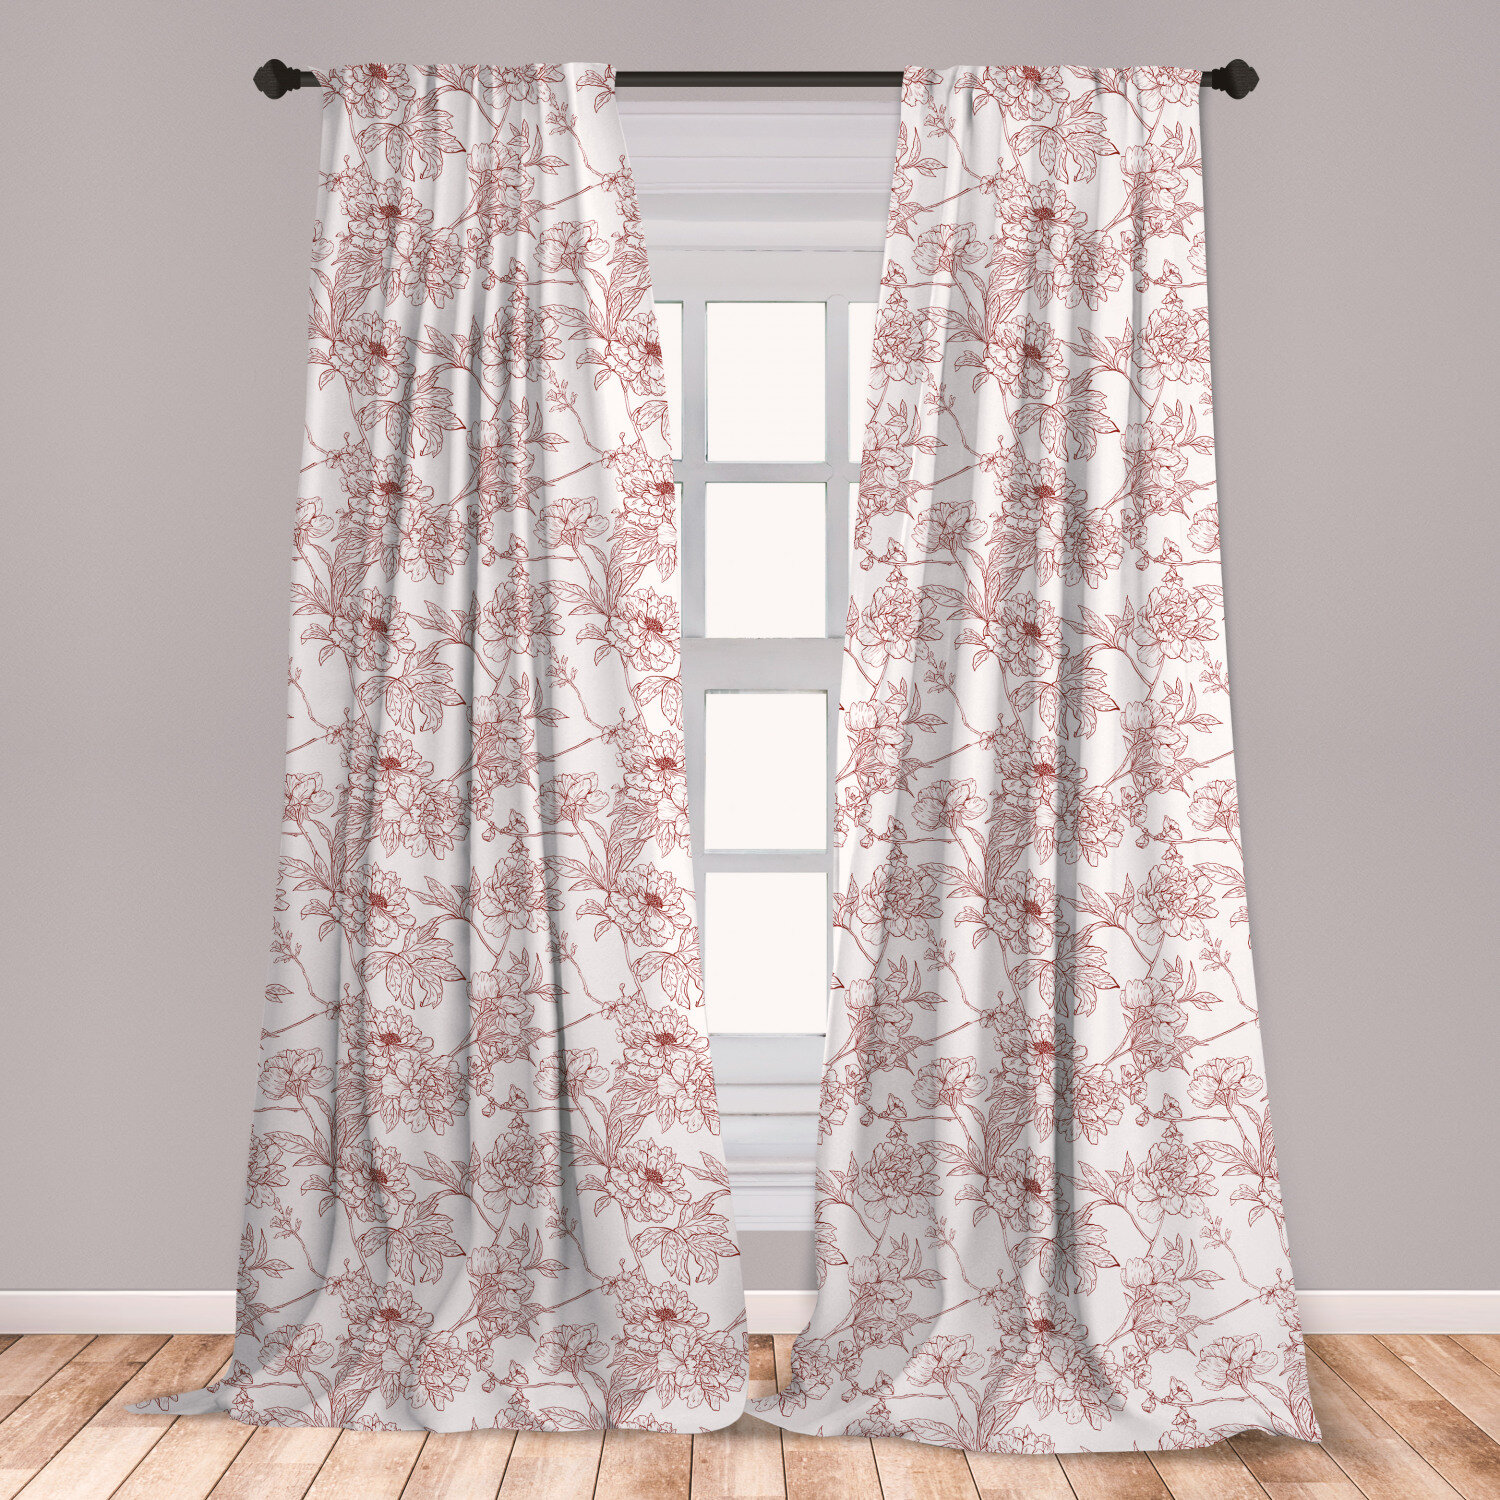 See Best Living Room Curtains Place Gallery @house2homegoods.net